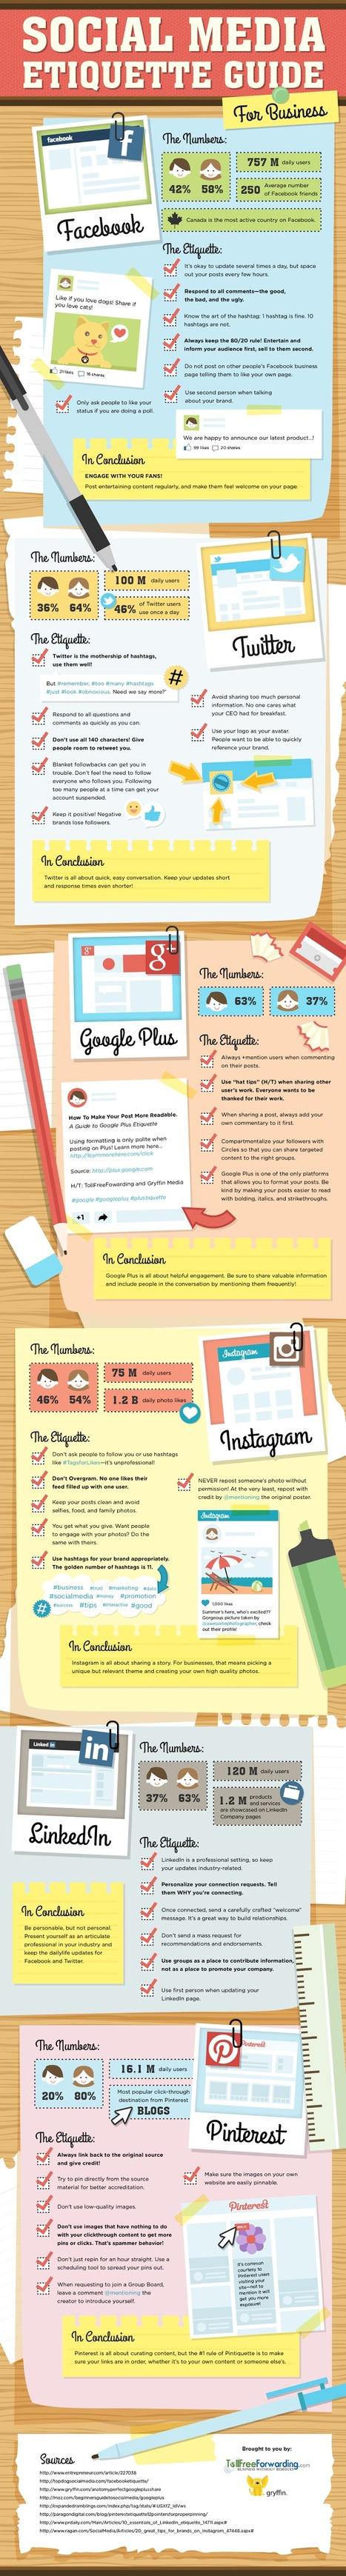 GooglePlus, #Twitter, #Instagram, Facebook, #Pinterest - #SocialMedia Etiquette Guide For Business - #infographic | Personas 2.0: #SocialMedia #Strategist | Scoop.it